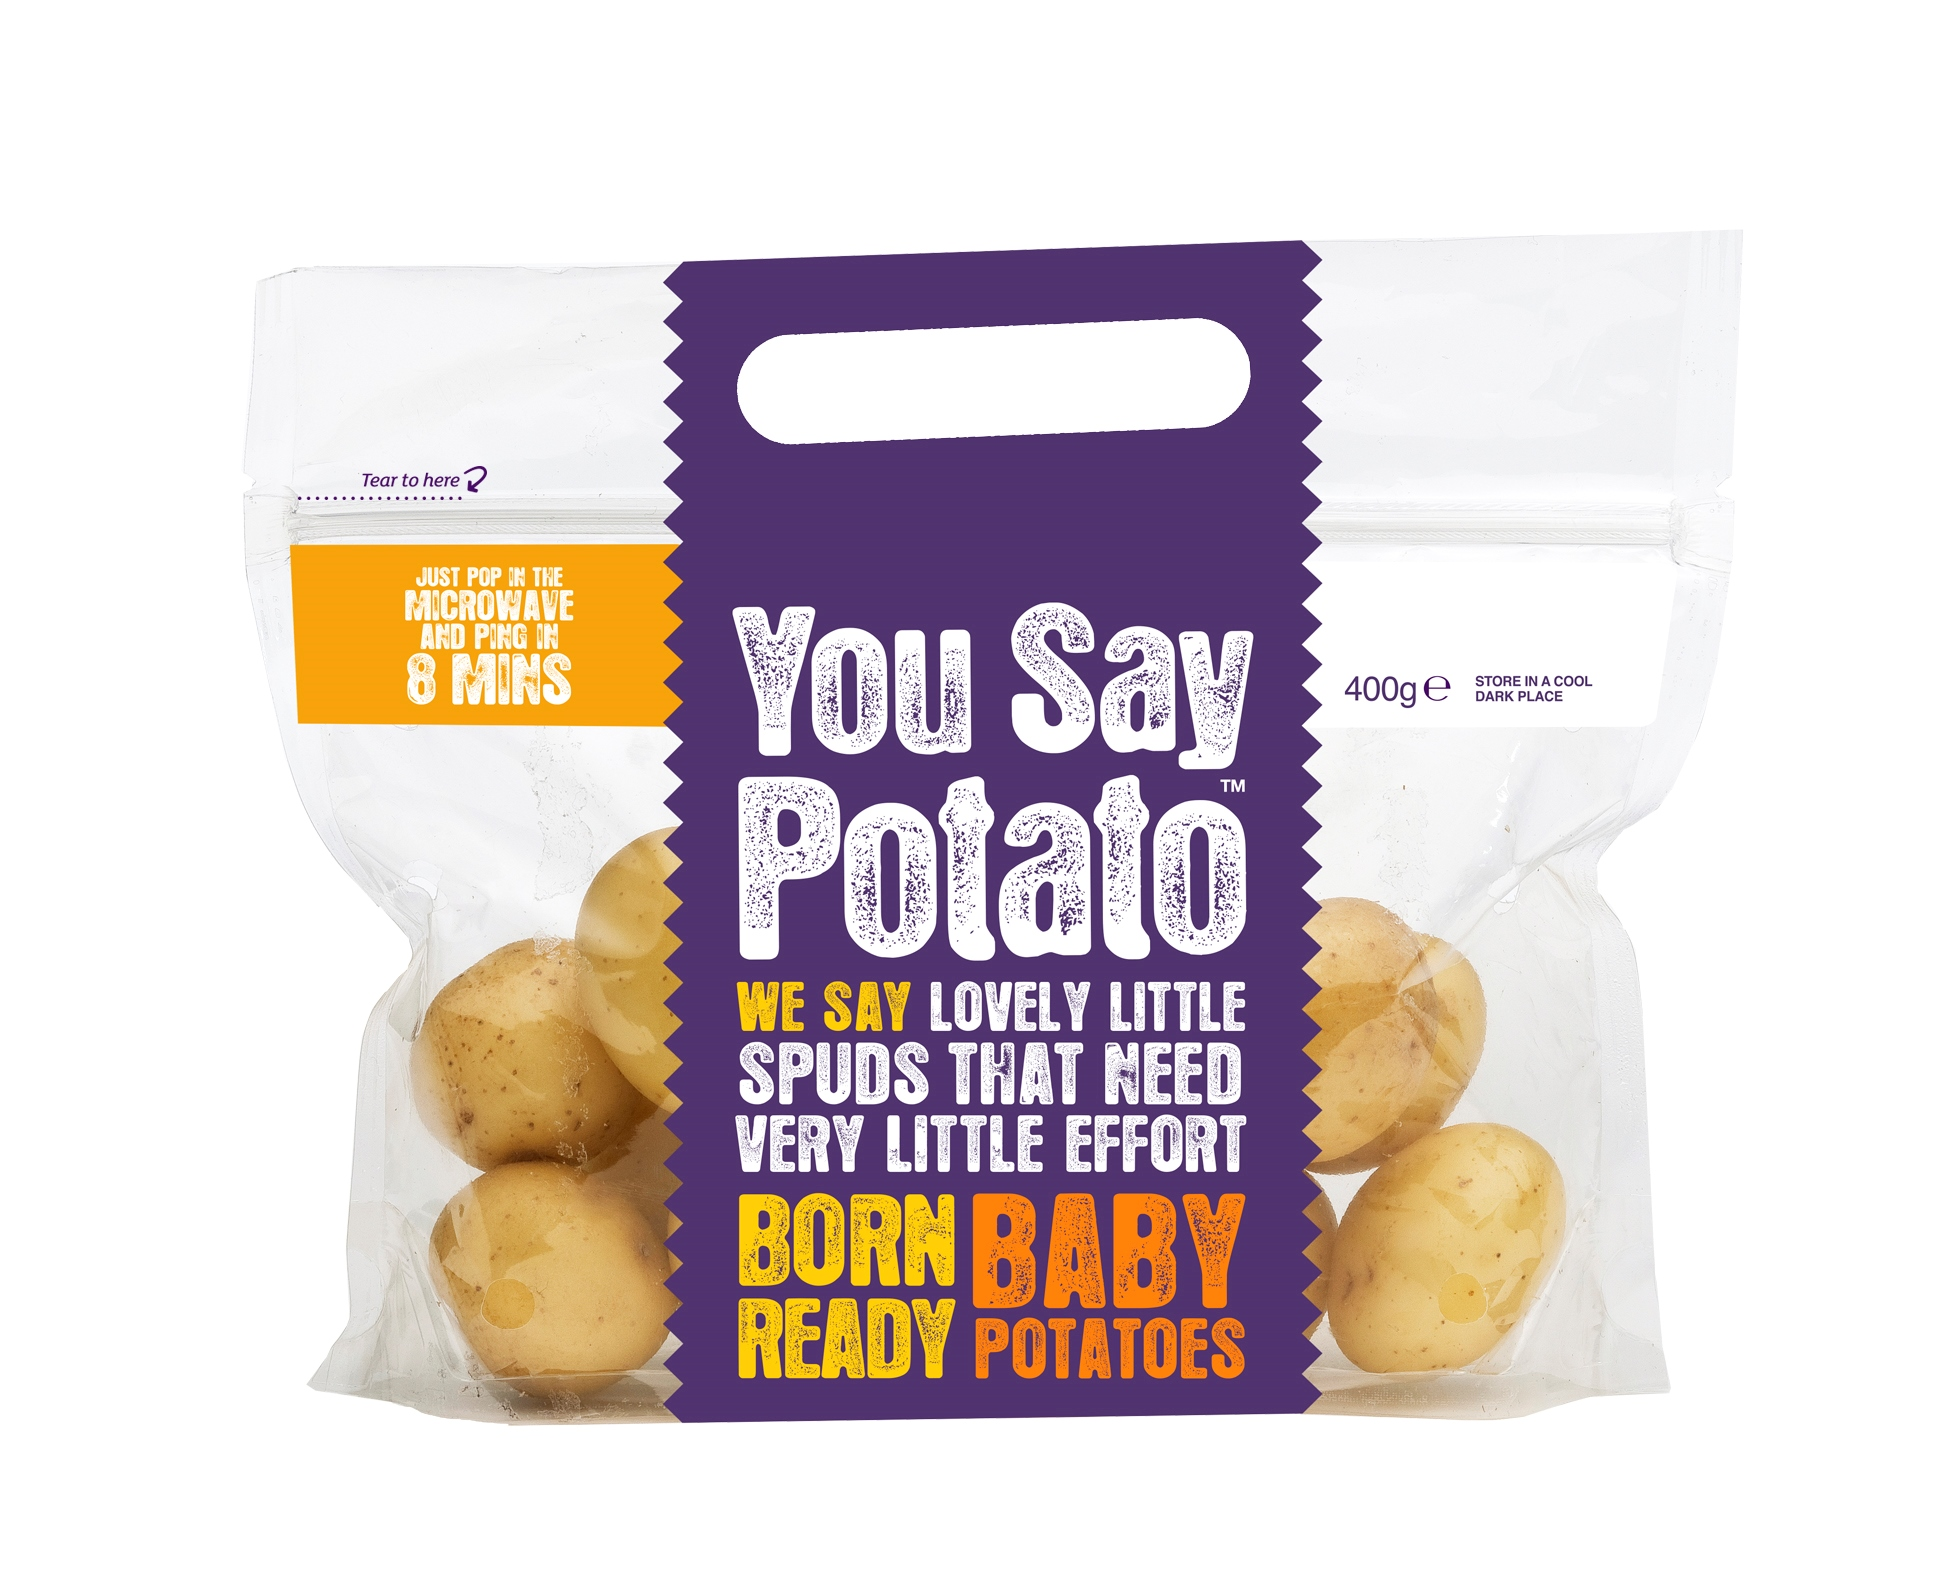 You Say Potato brand is born